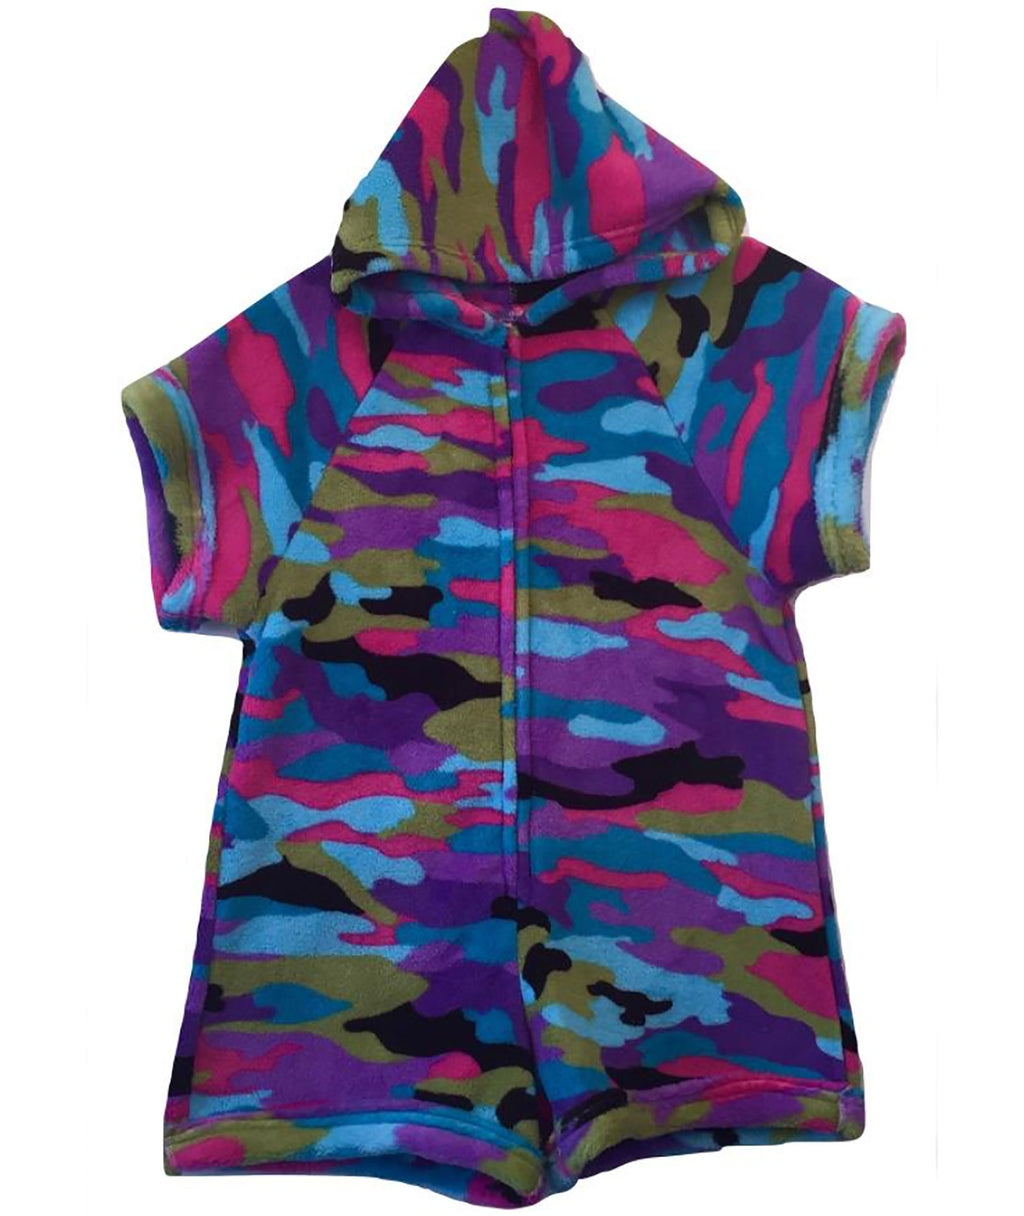 Made with Love and Kisses Girls Funky Camo Romper